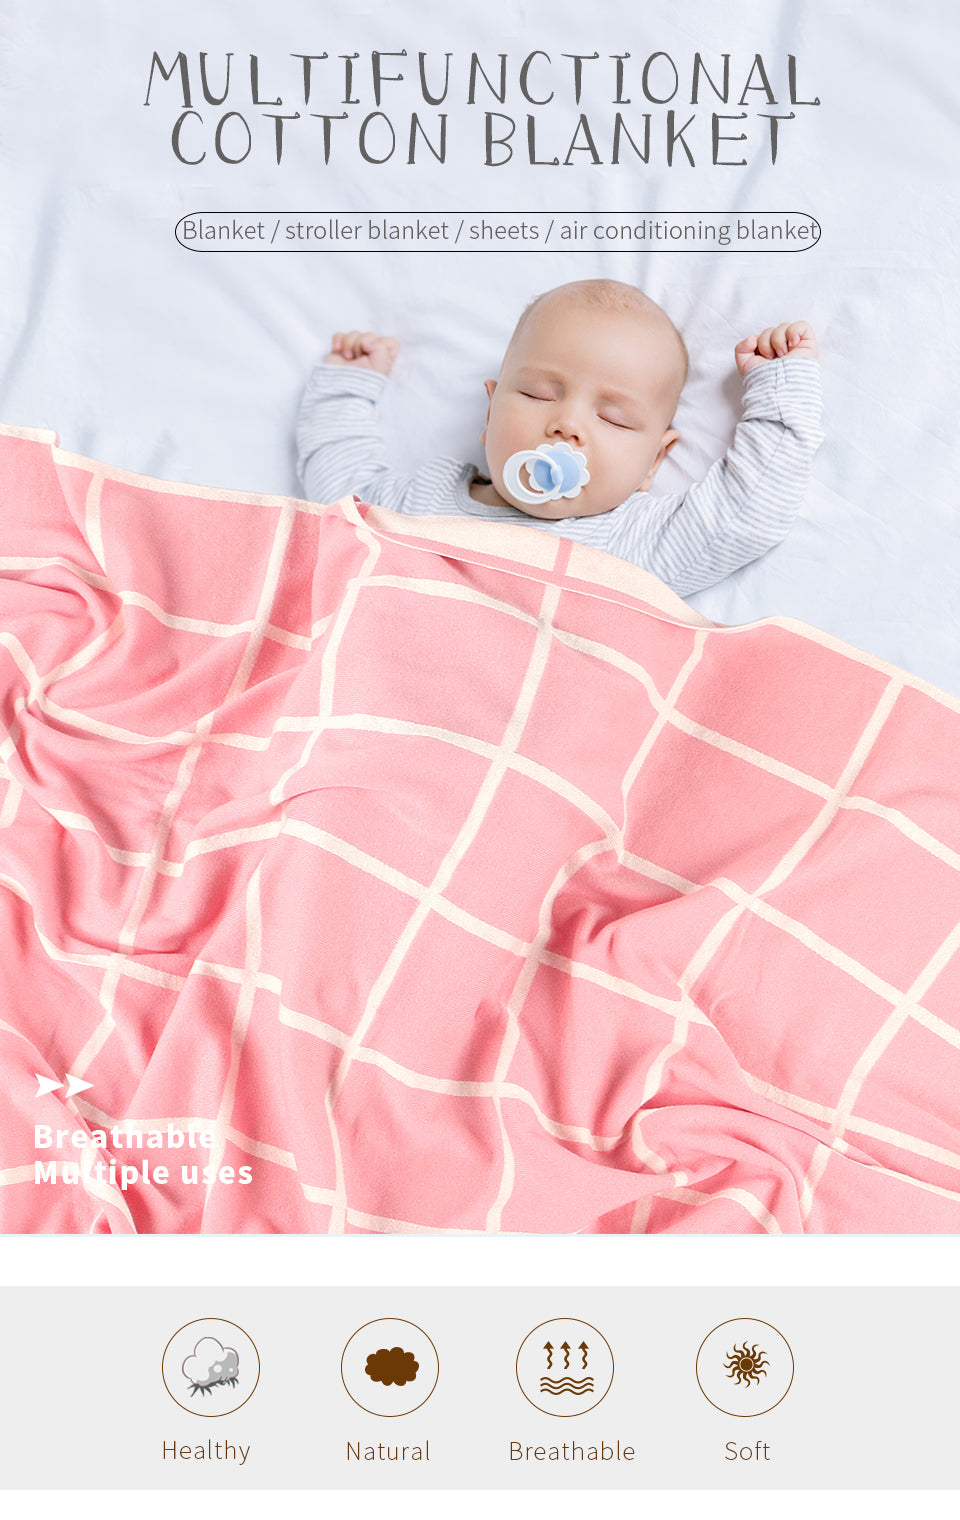 blanket for a baby